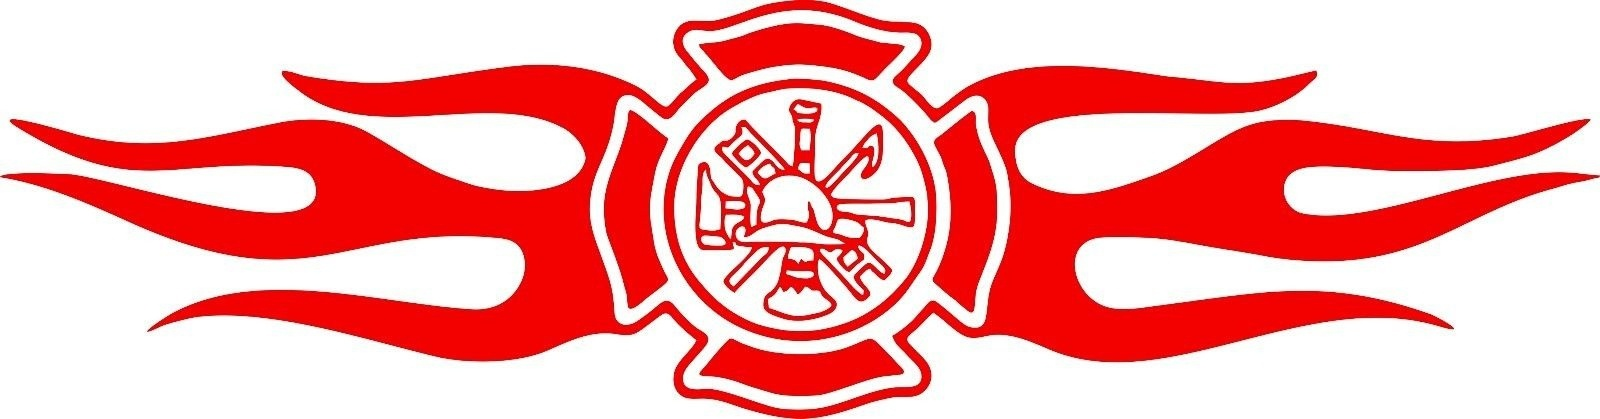 For Maltese Cross Fireman Fire Rescue Car Truck Window Vinyl Decal Sticker Various Sizes Exterior Accessories Automobiles & Motorcycles